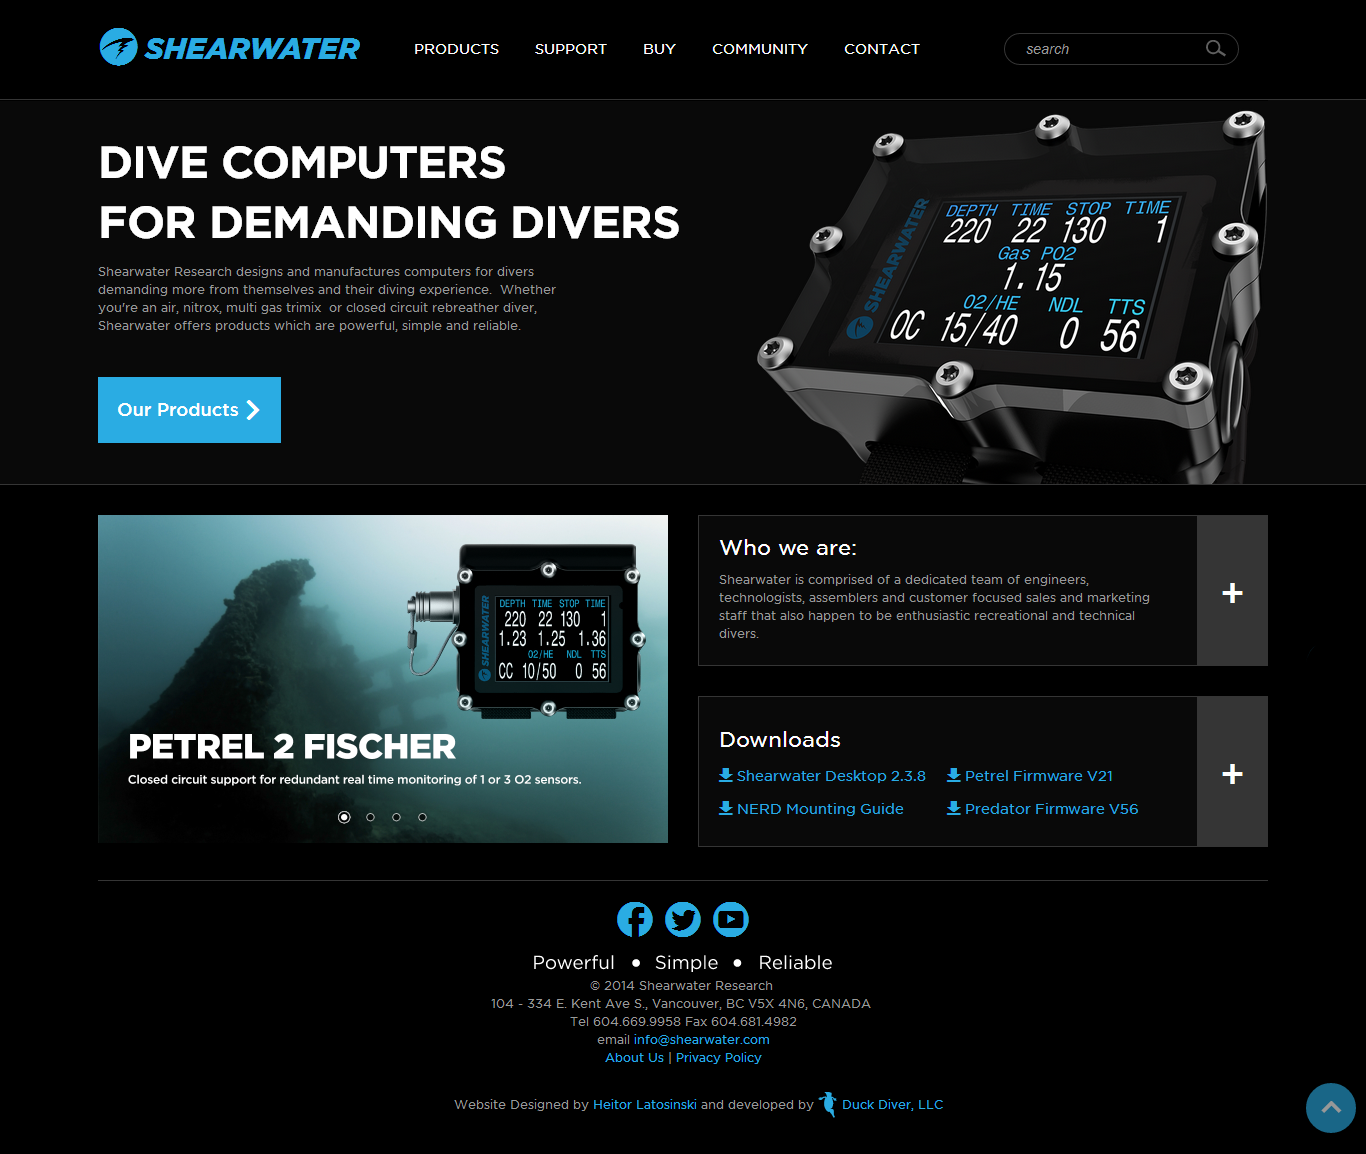 Shearwater Dive Computers